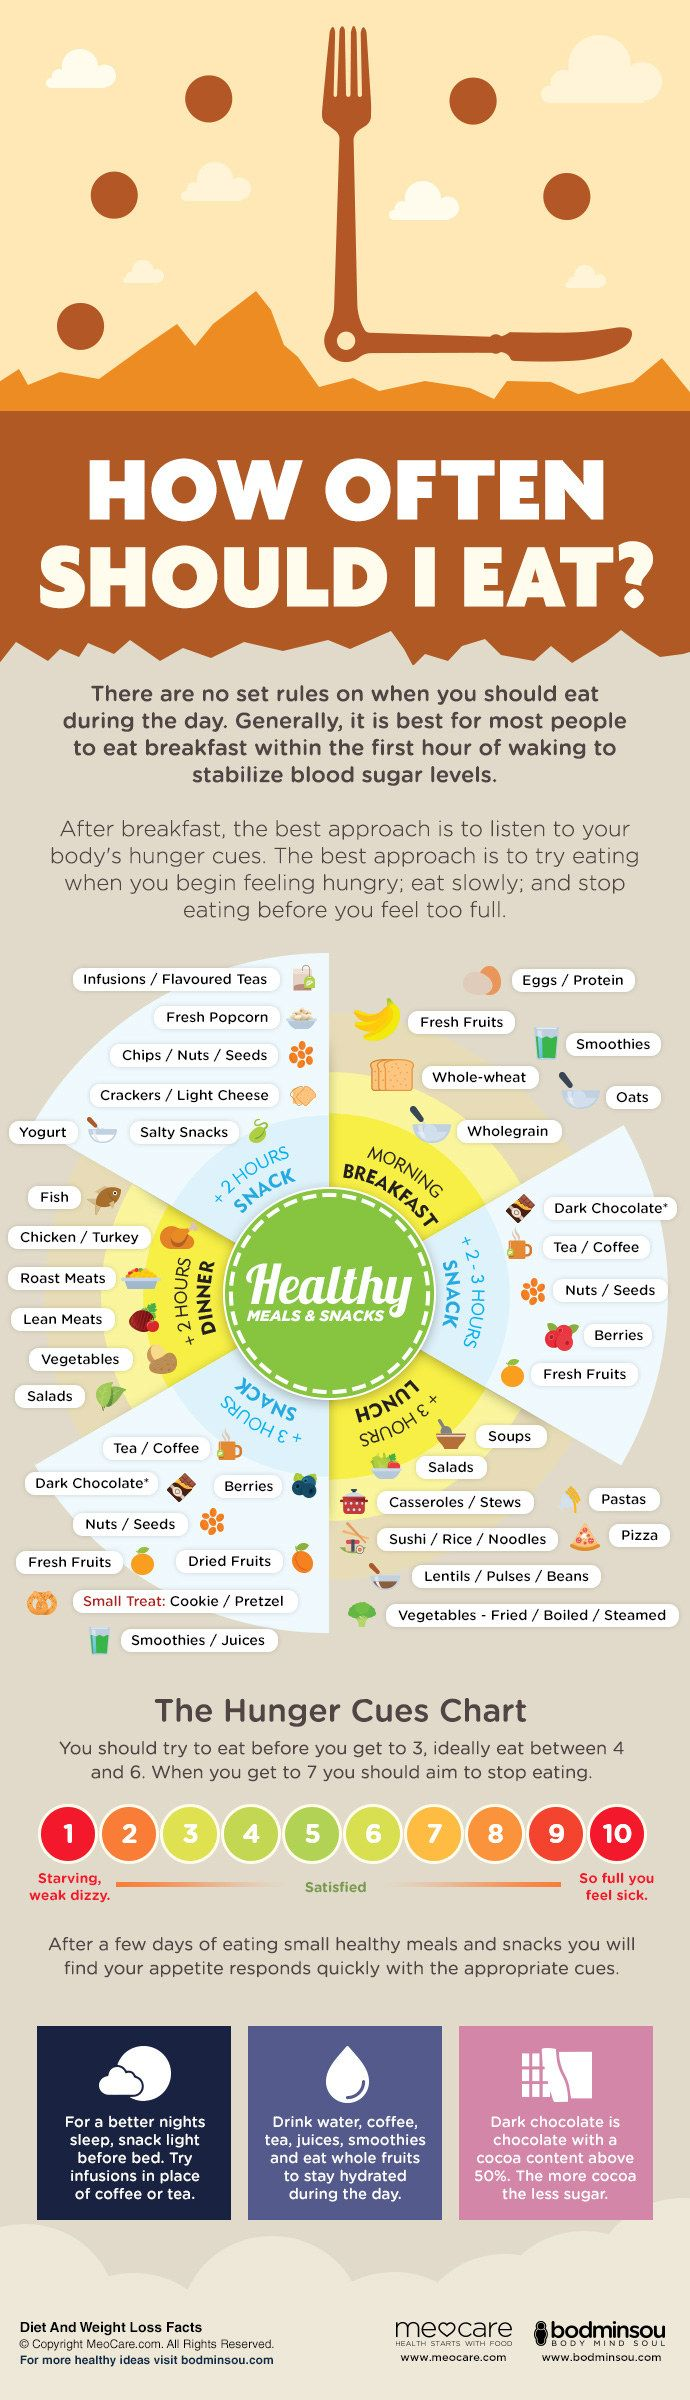 20 Cheat Sheets For When You're Trying To Eat A Little Healthier